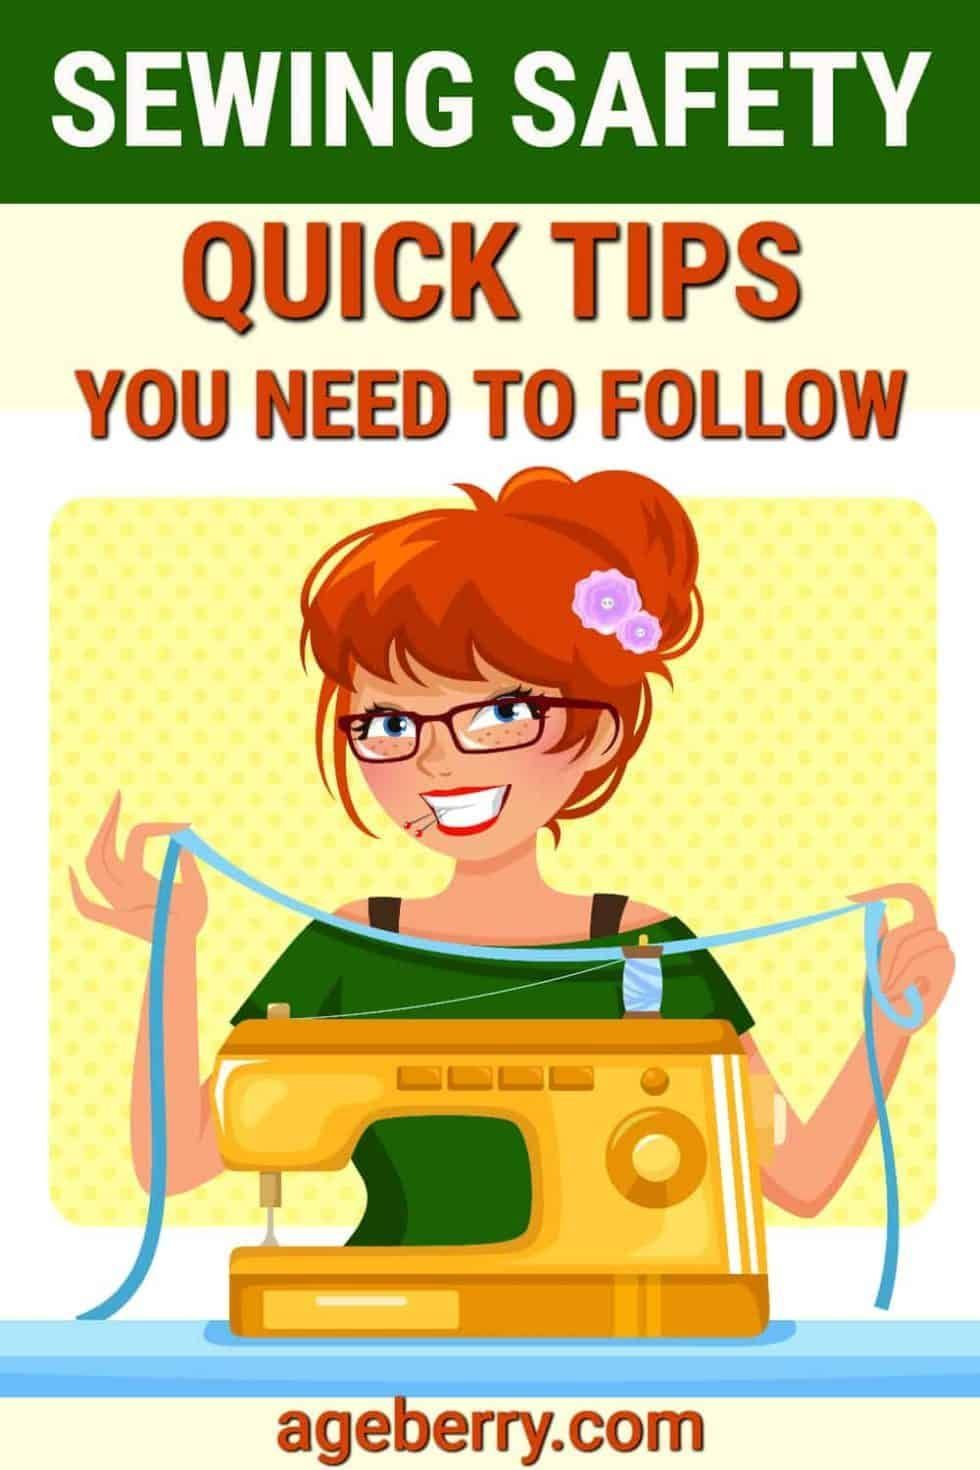 Quick safety tips you need to follow while sewing   iconos